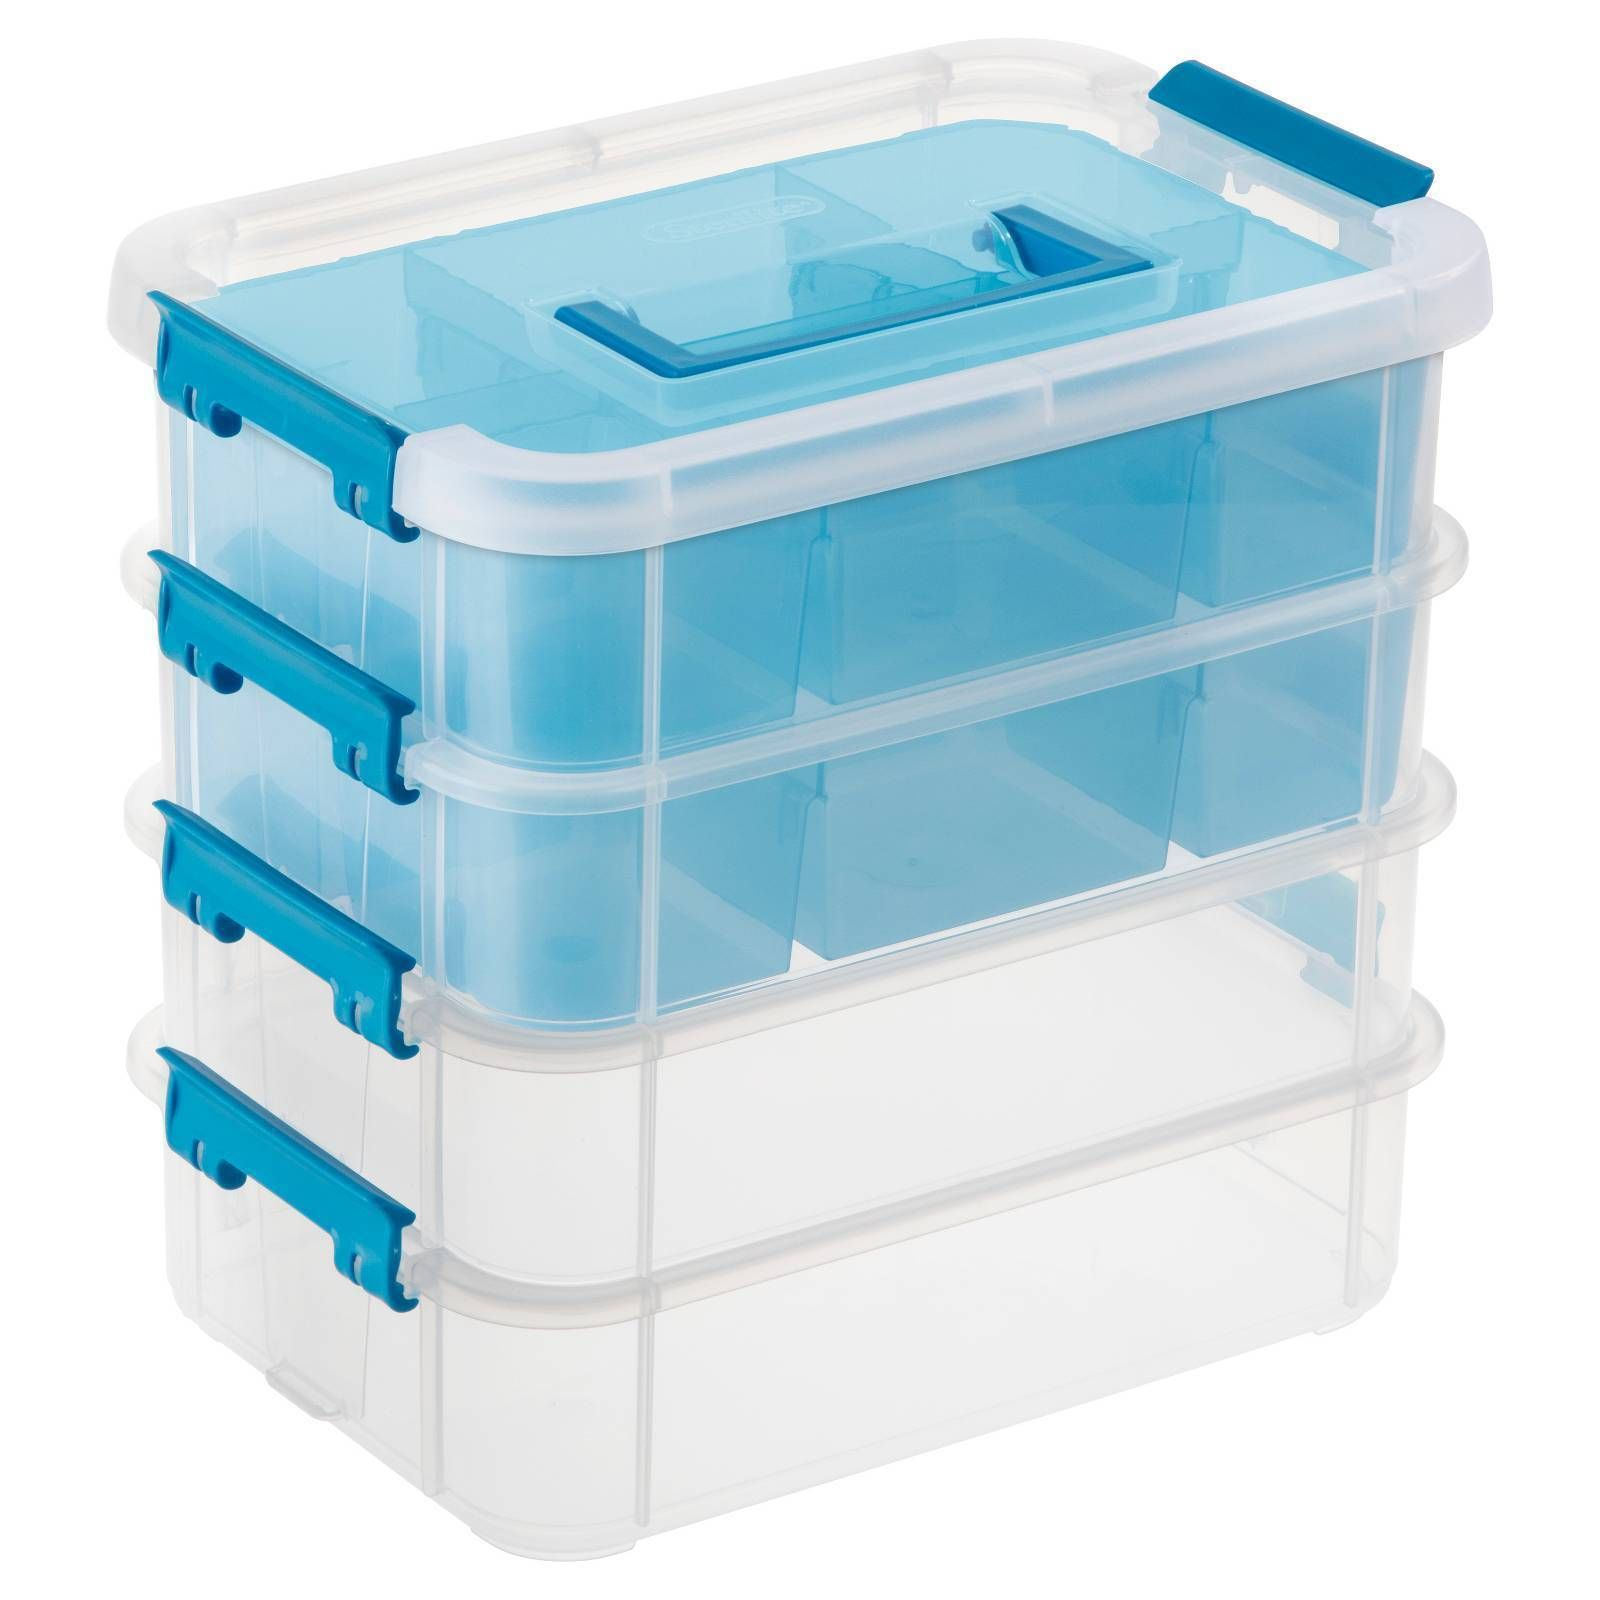 28+ Portable craft storage caddy carry handle ideas in 2021